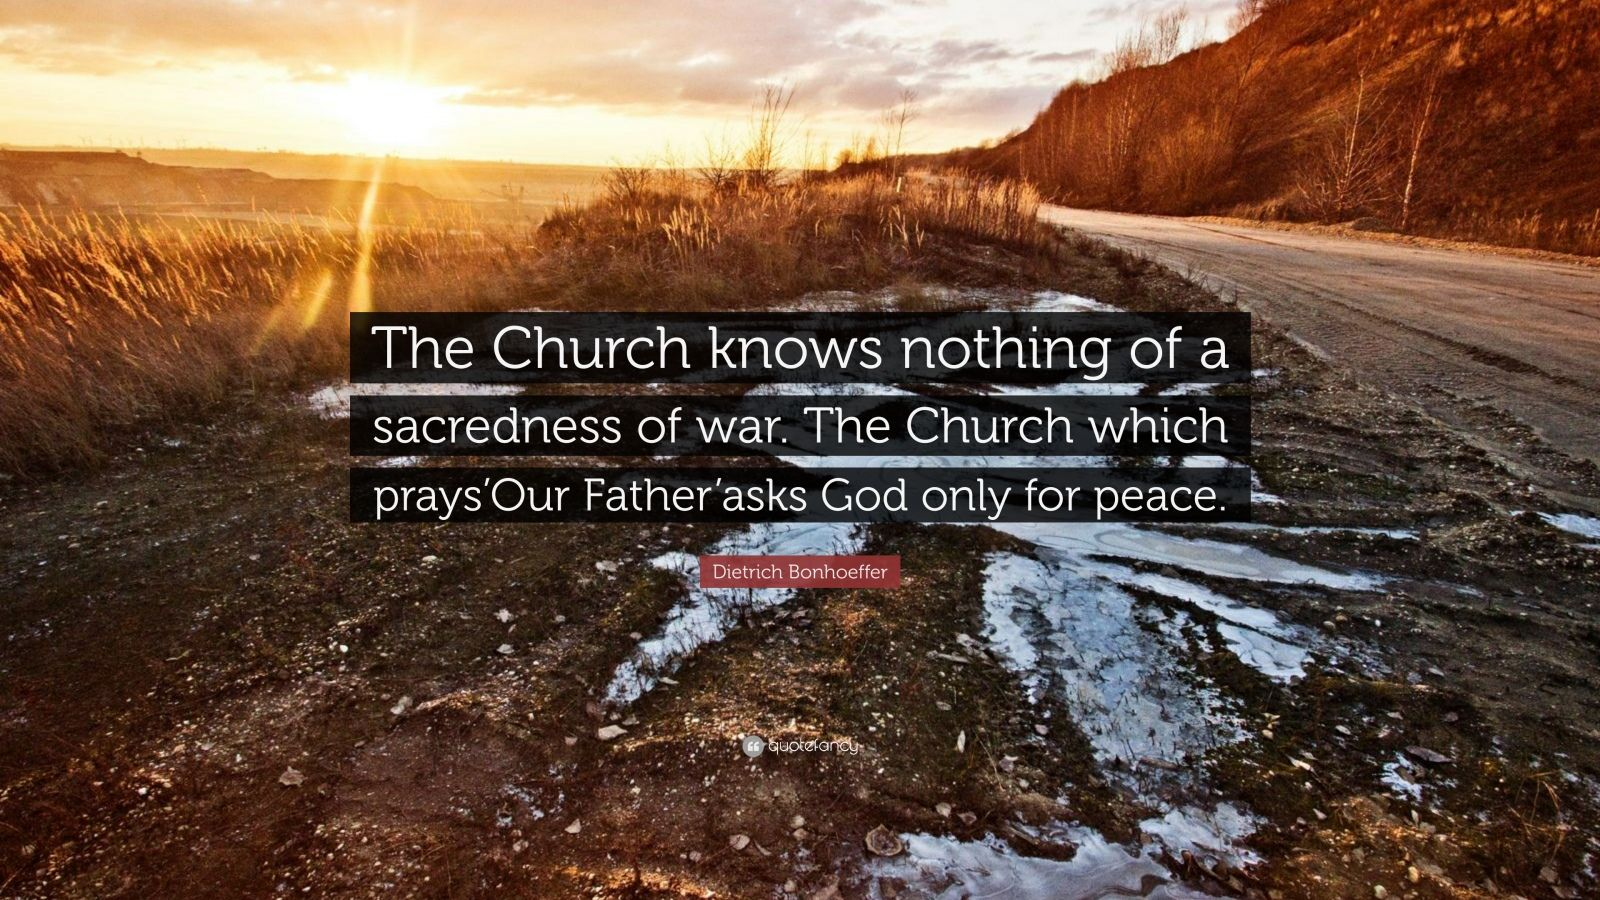 """Dietrich Bonhoeffer Quote: """"The Church knows nothing of a sacredness of war. The Church which prays'Our Father'asks God only for peace."""""""